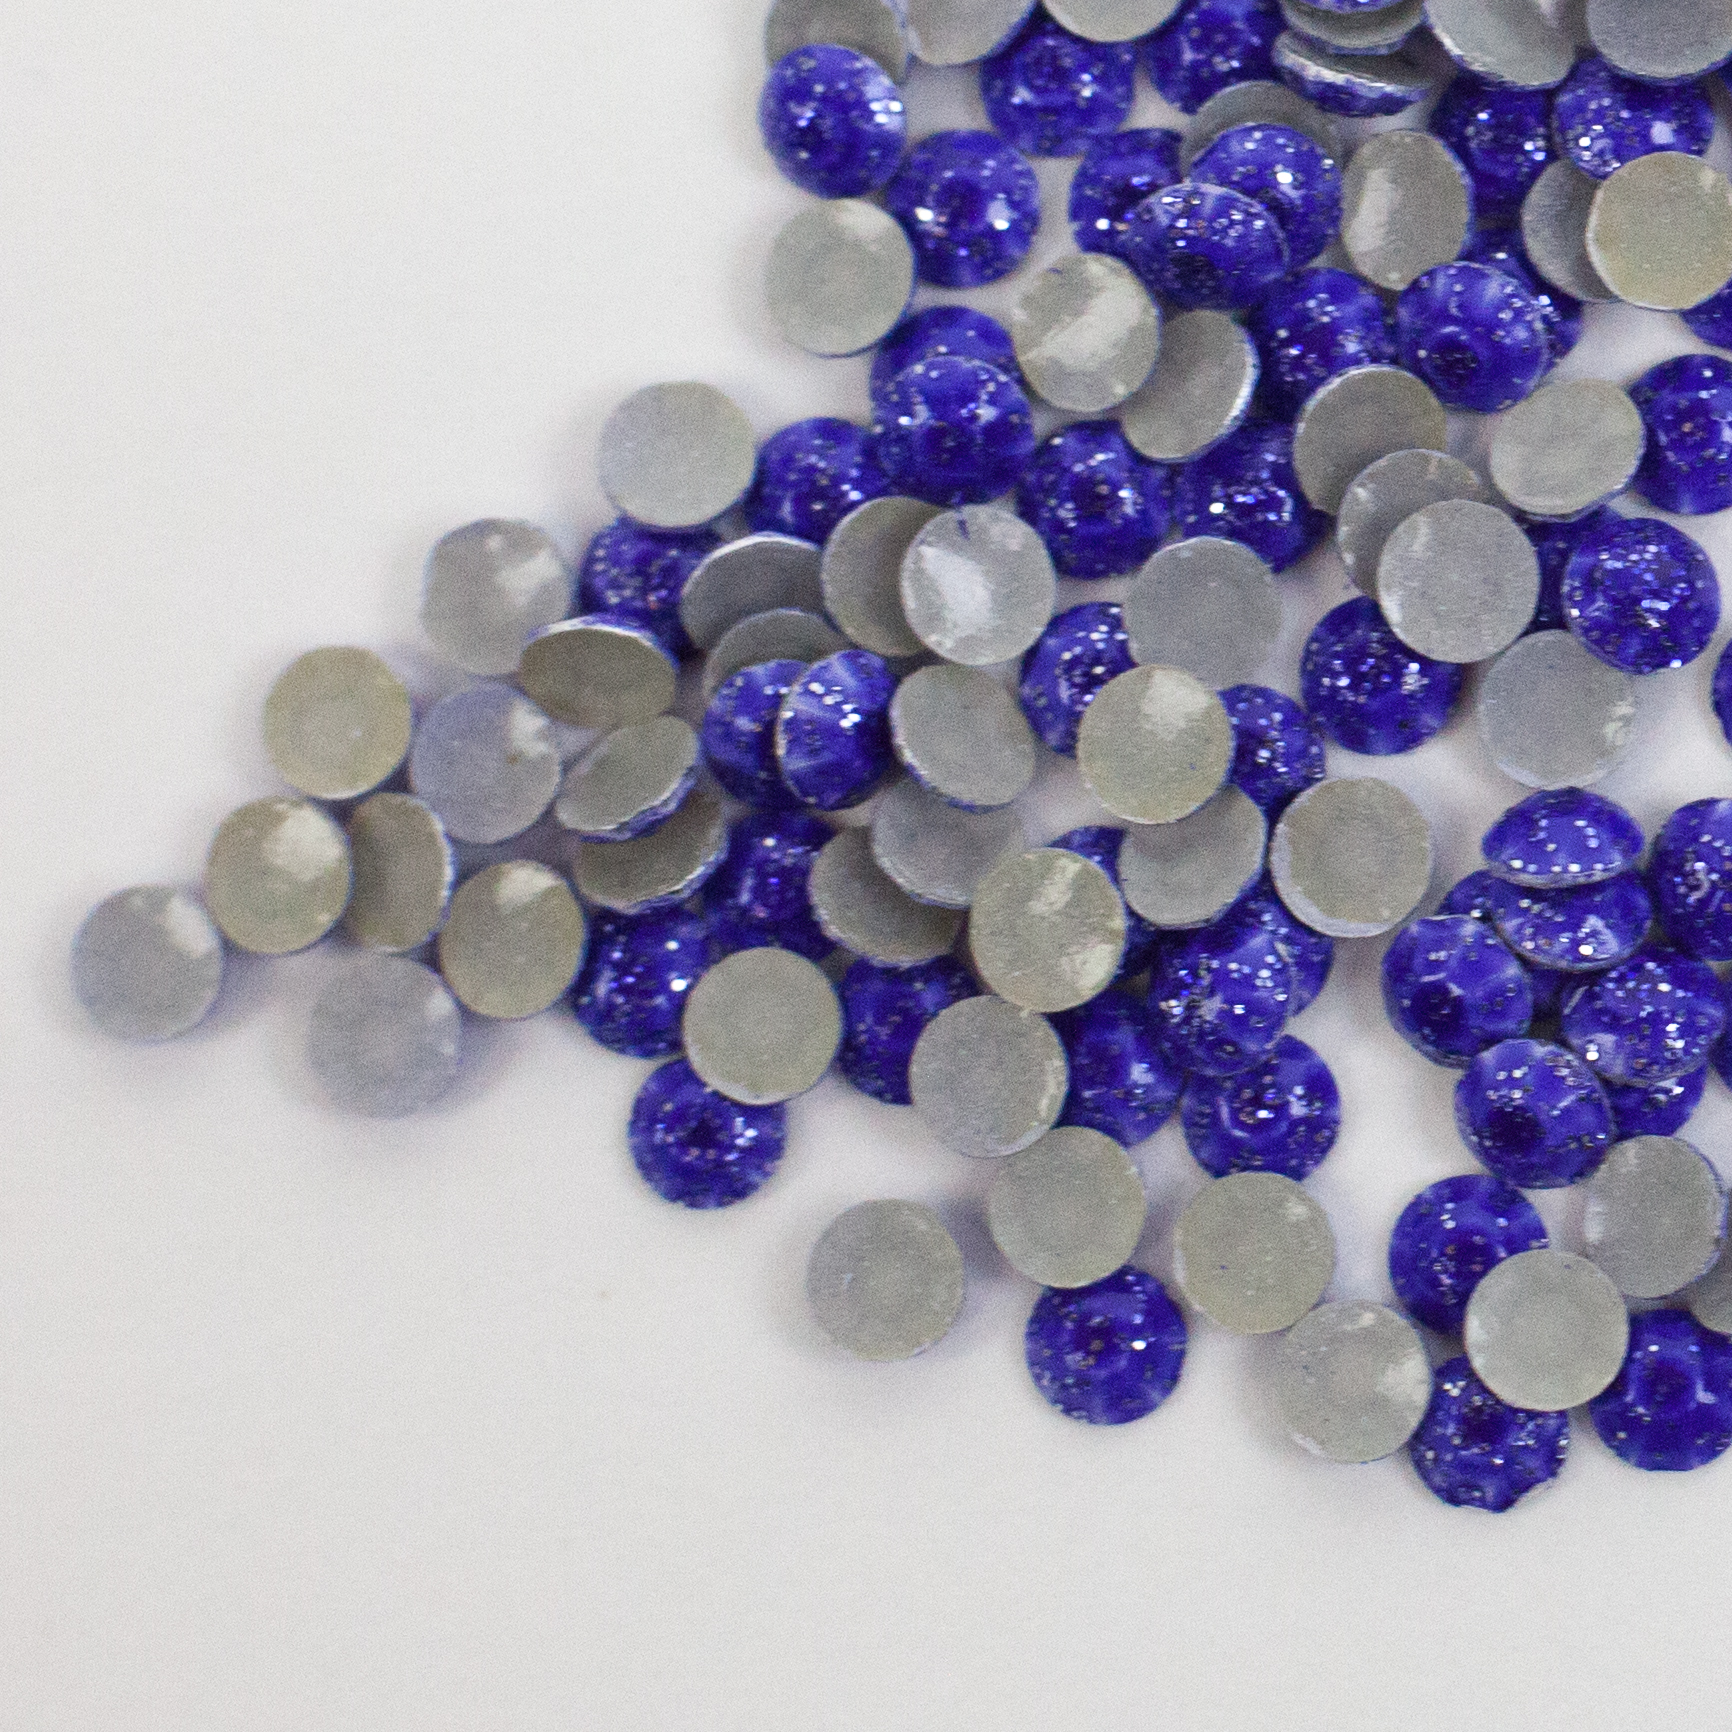 Glitter Hot-Fix Purple SS6 Rhinestuds 1,000-Gross